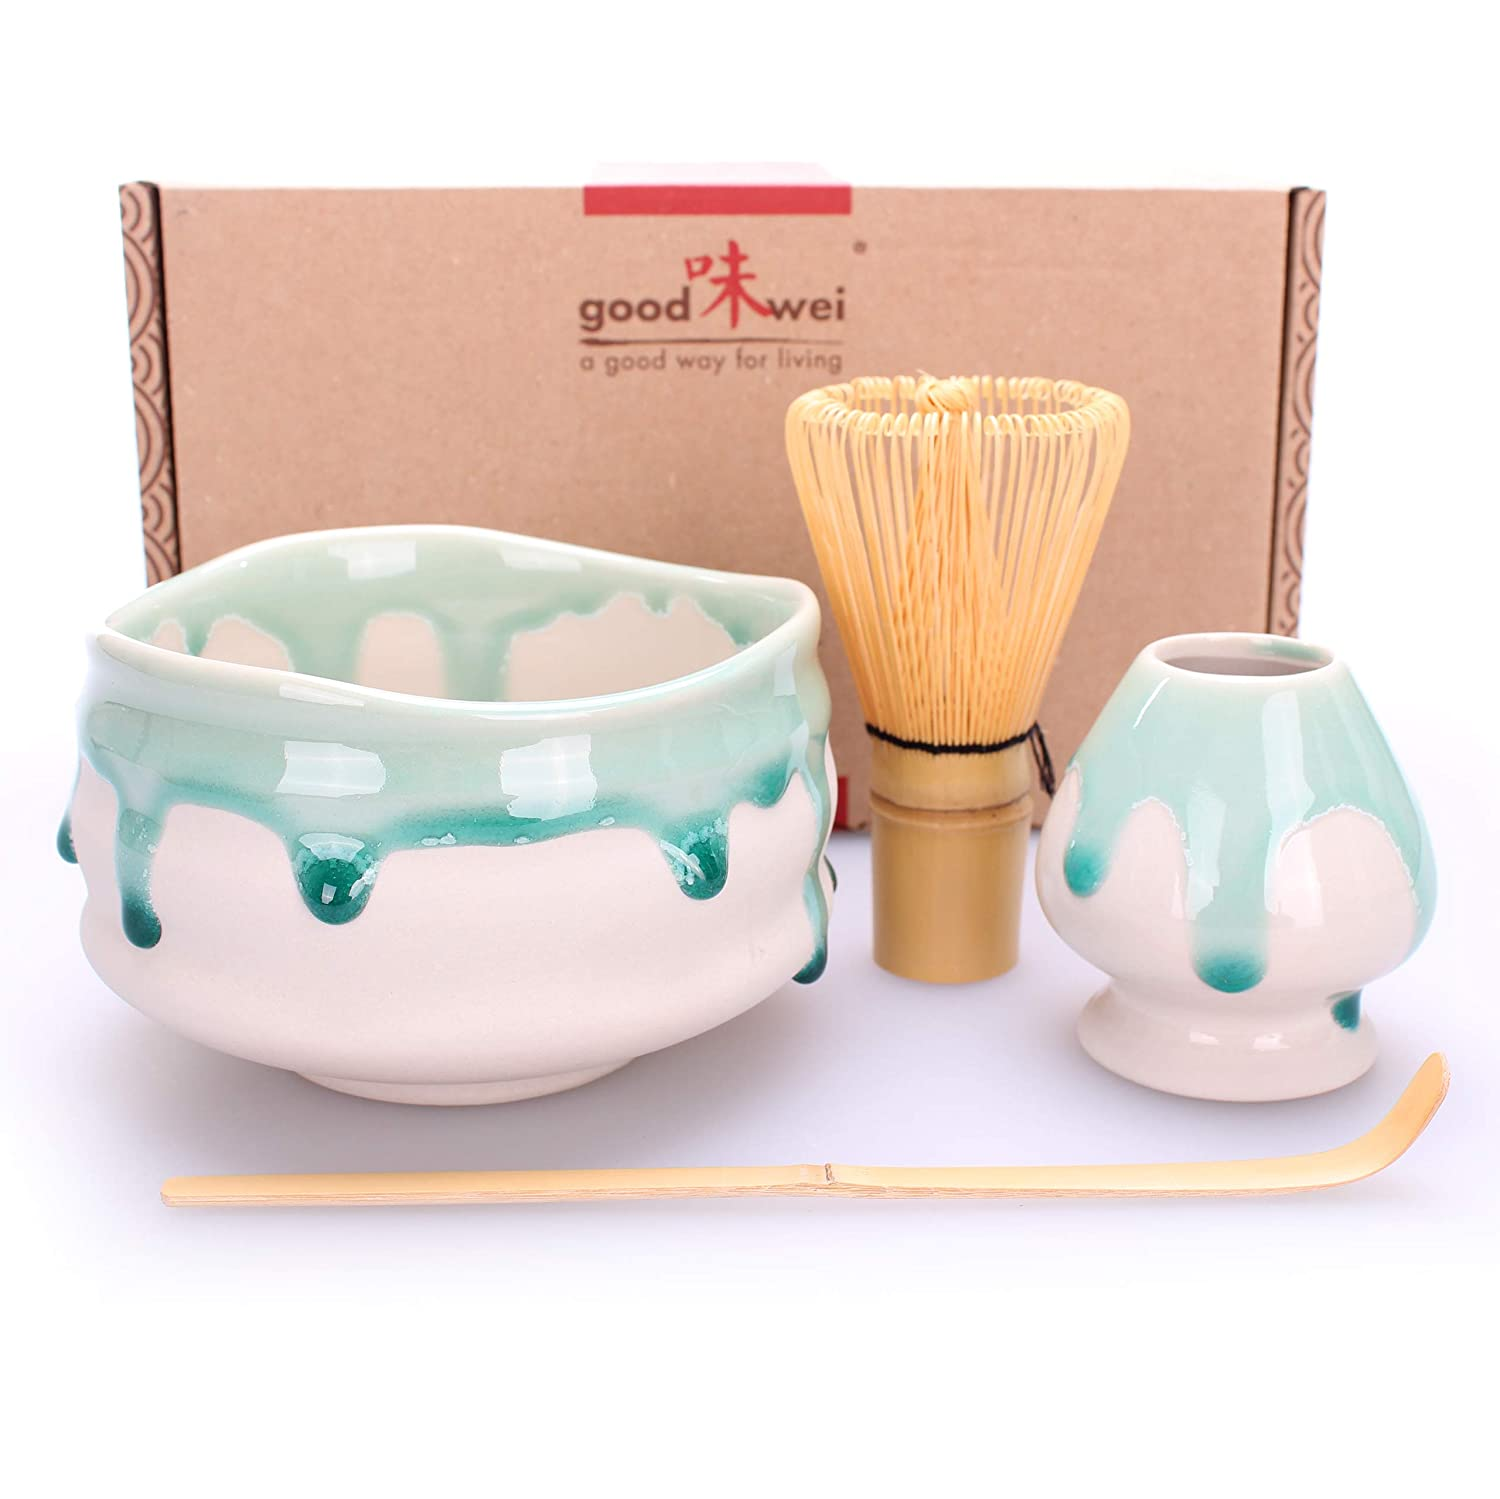 Goodwei Premium Matcha Tea Set Suiteki - Ceremonial Bowl Chawan, Whisk and Holder - Gift Box (80) 998